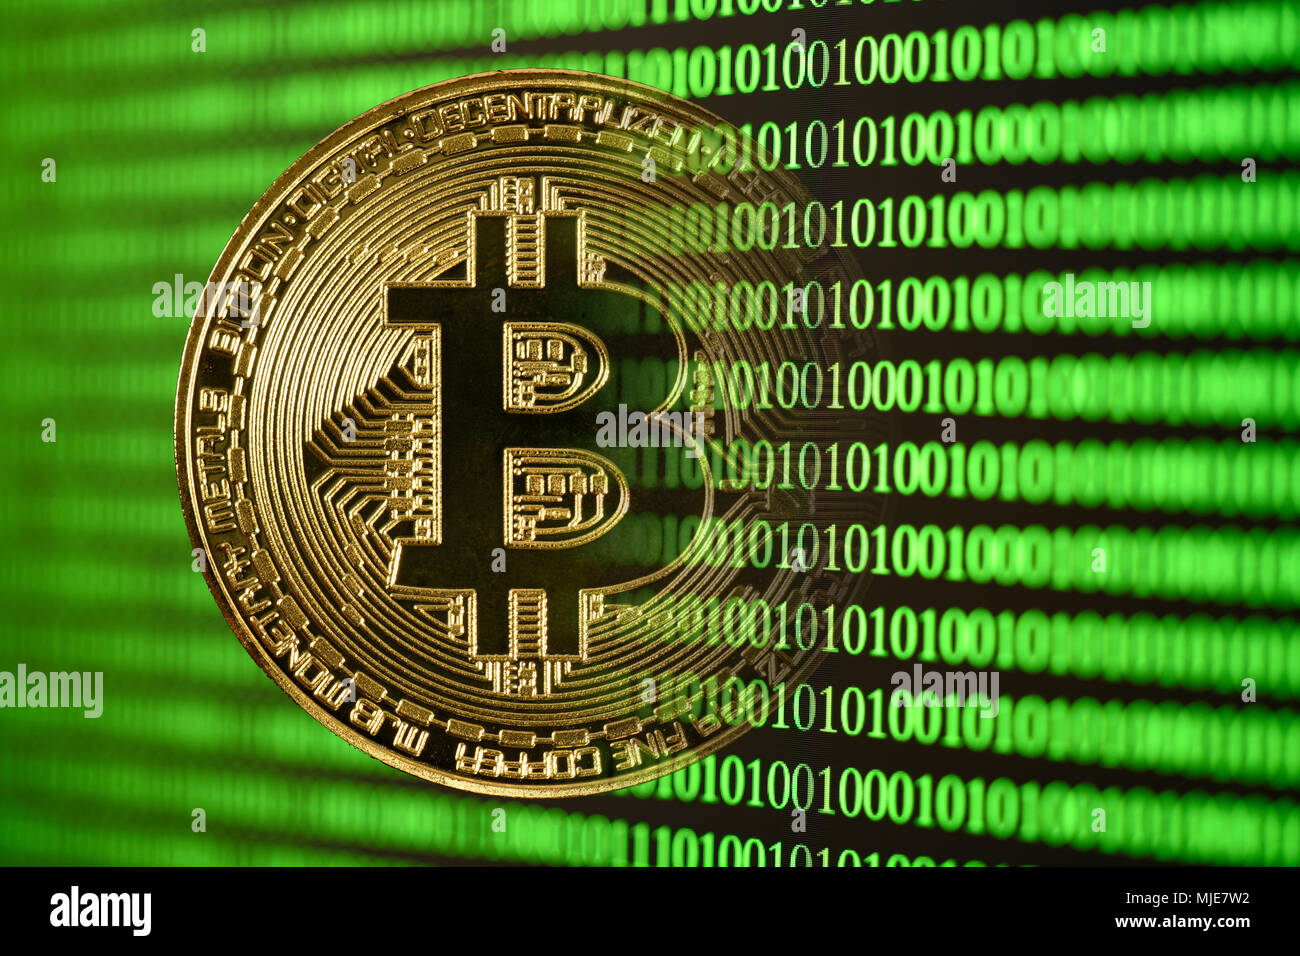 icon digital currency, golden physical coin Bitcoin disappears in digital binary code - Stock Image